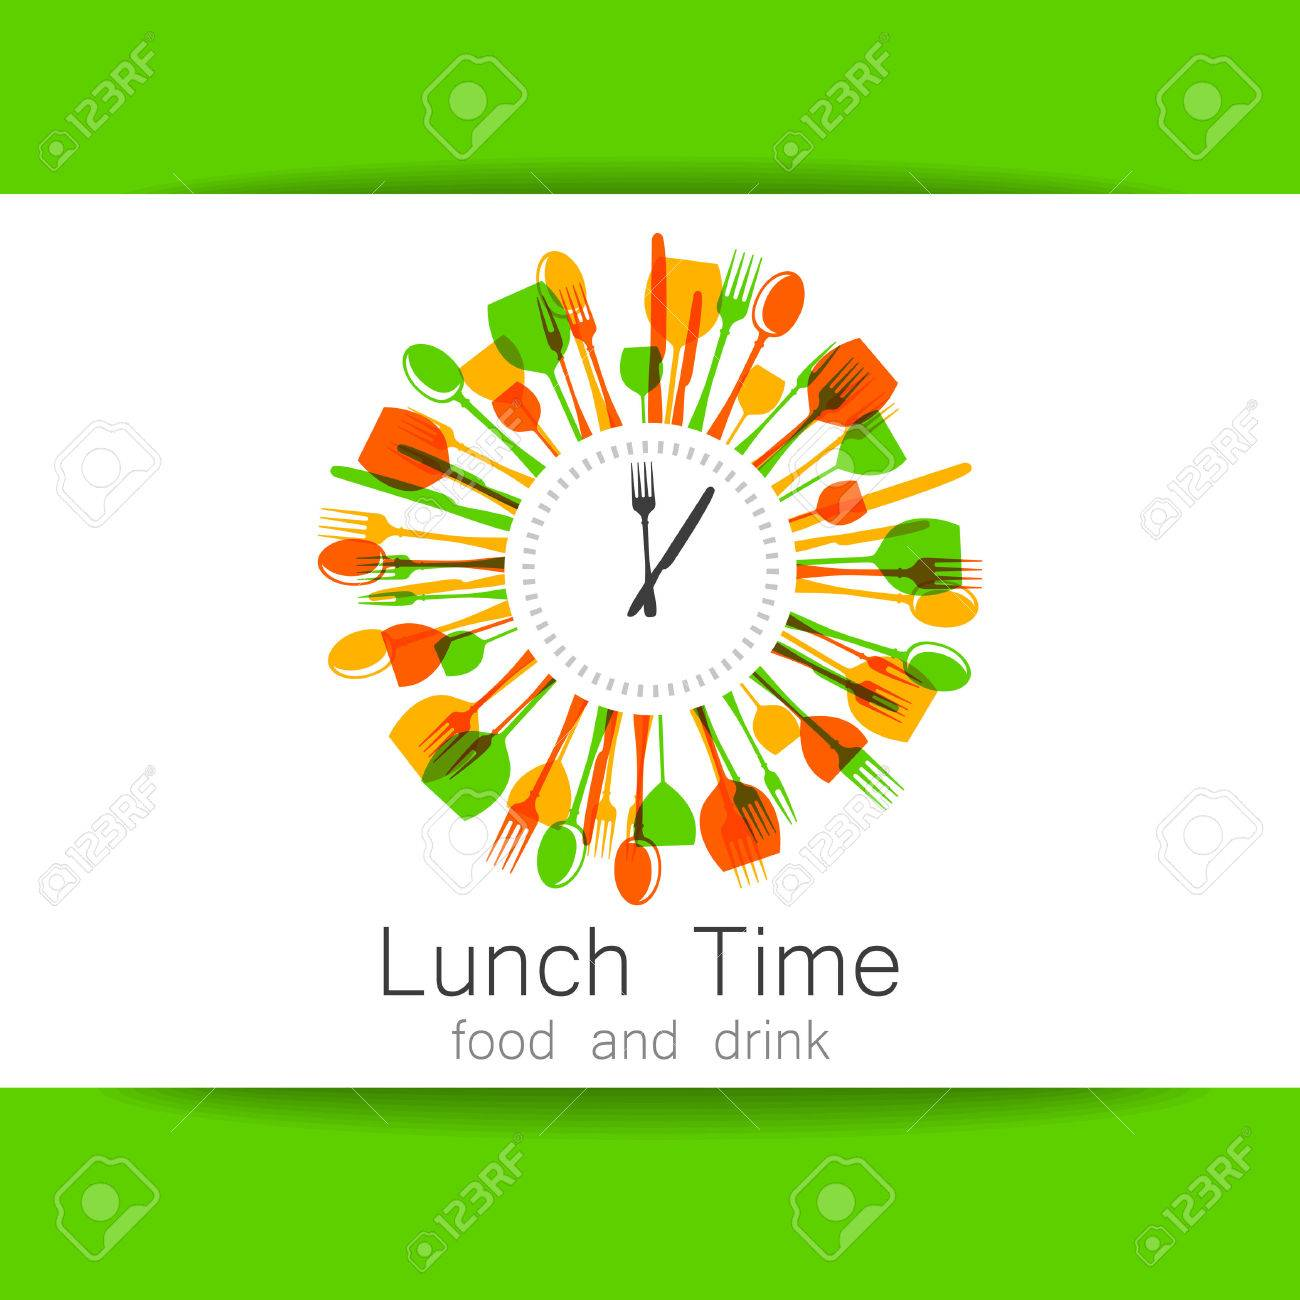 Restaurant, coffee shop, fast food, food delivery. Template design for corporate identity. Stock Vector - 50001939